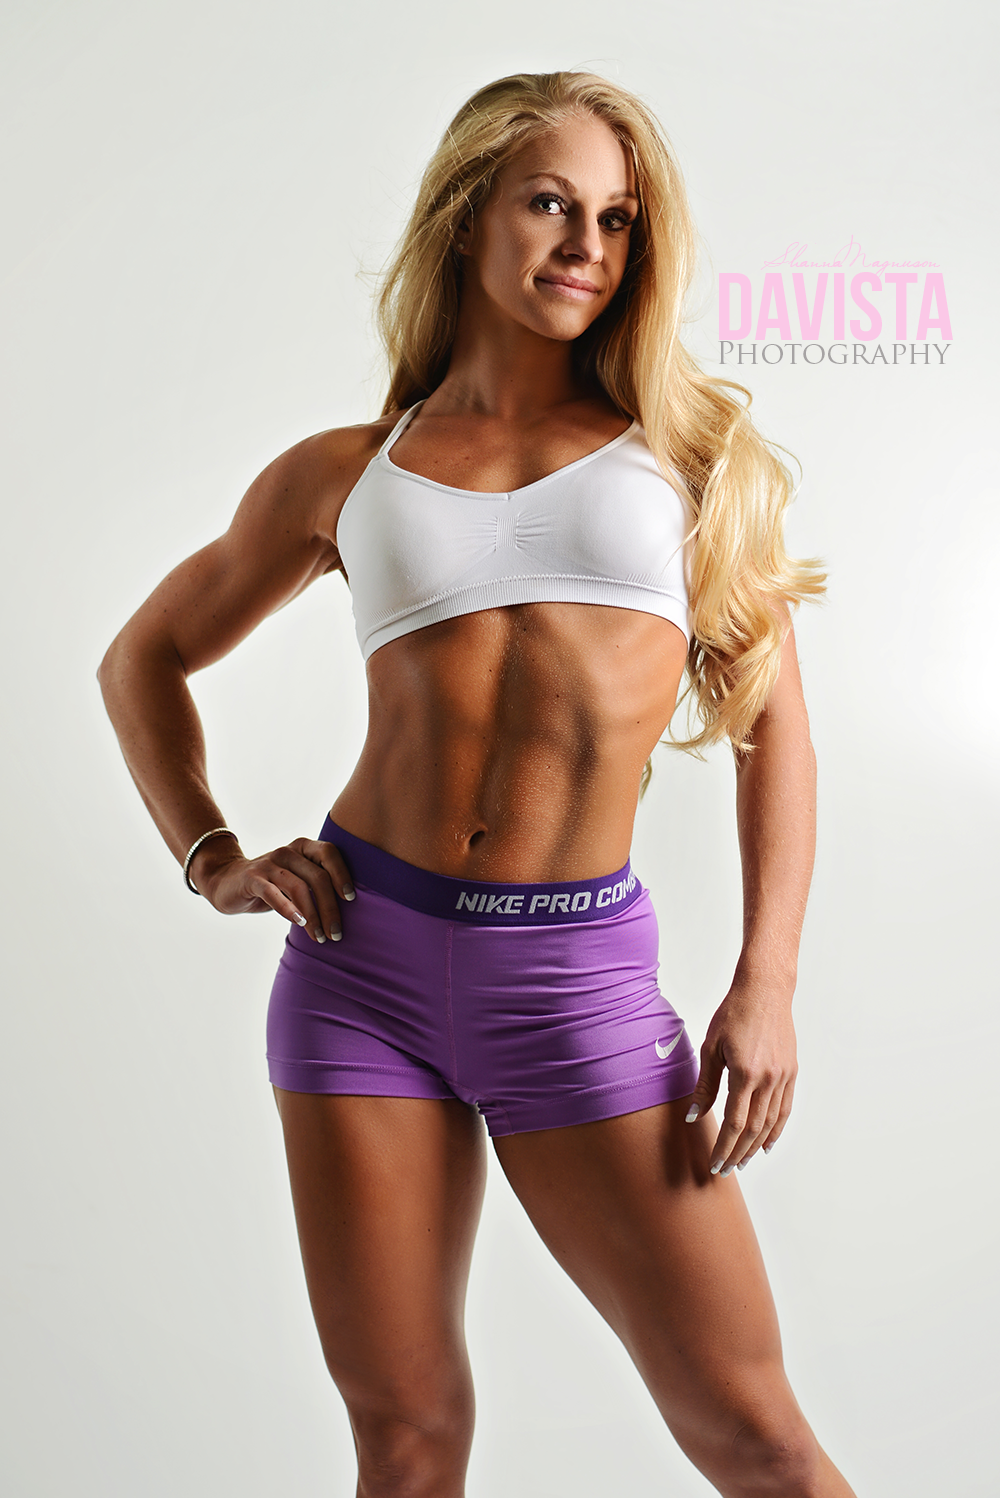 beauty fitness poses with abs and muscles